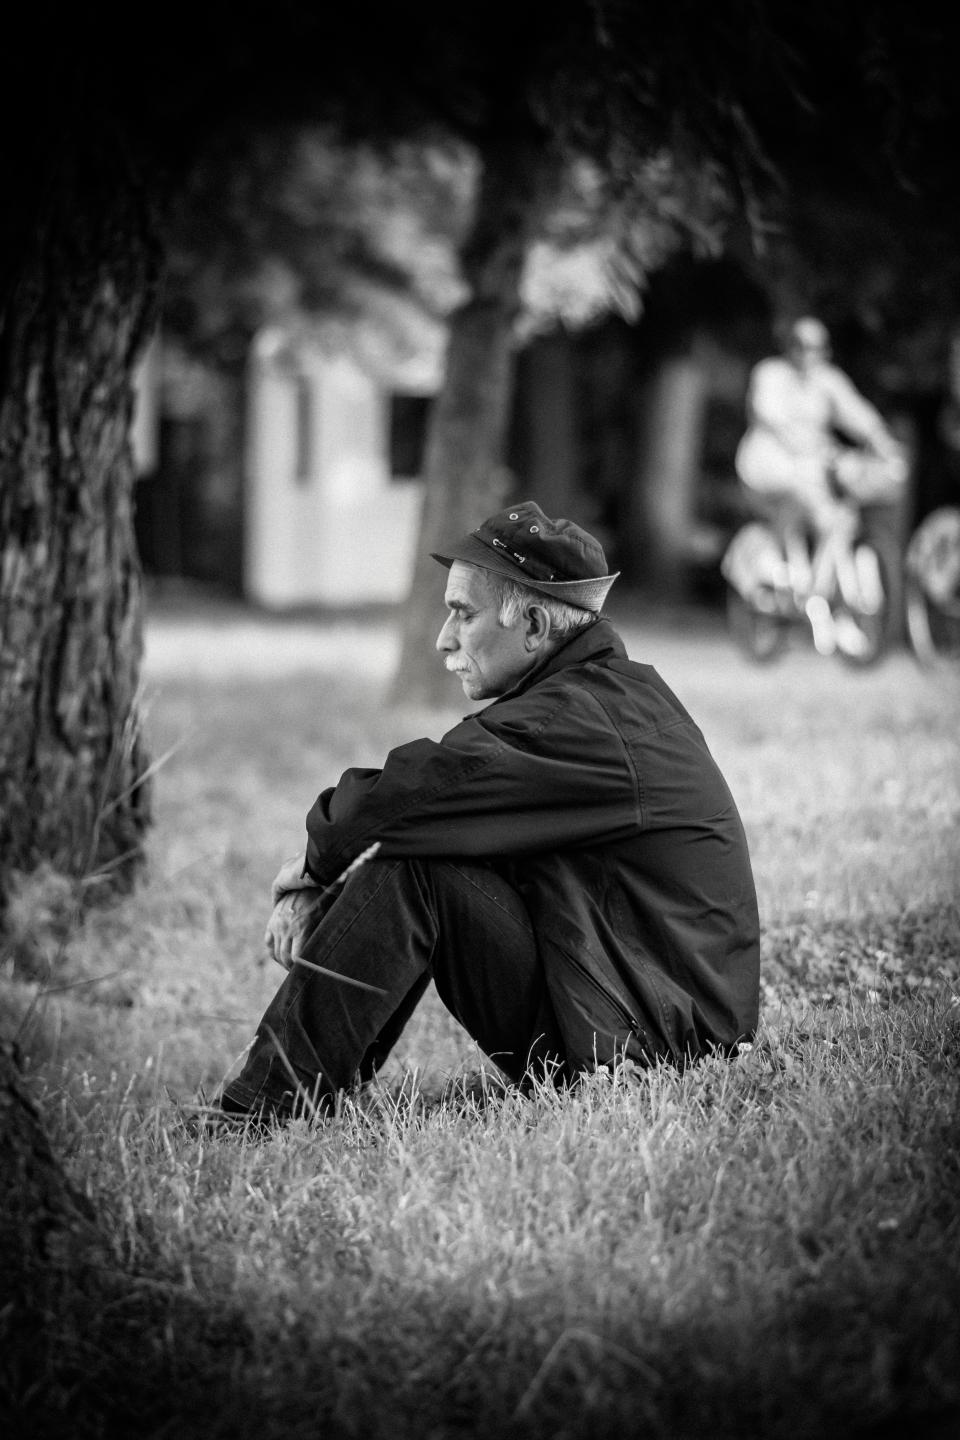 grass, people, old, man, sad, black and white, trees, playground